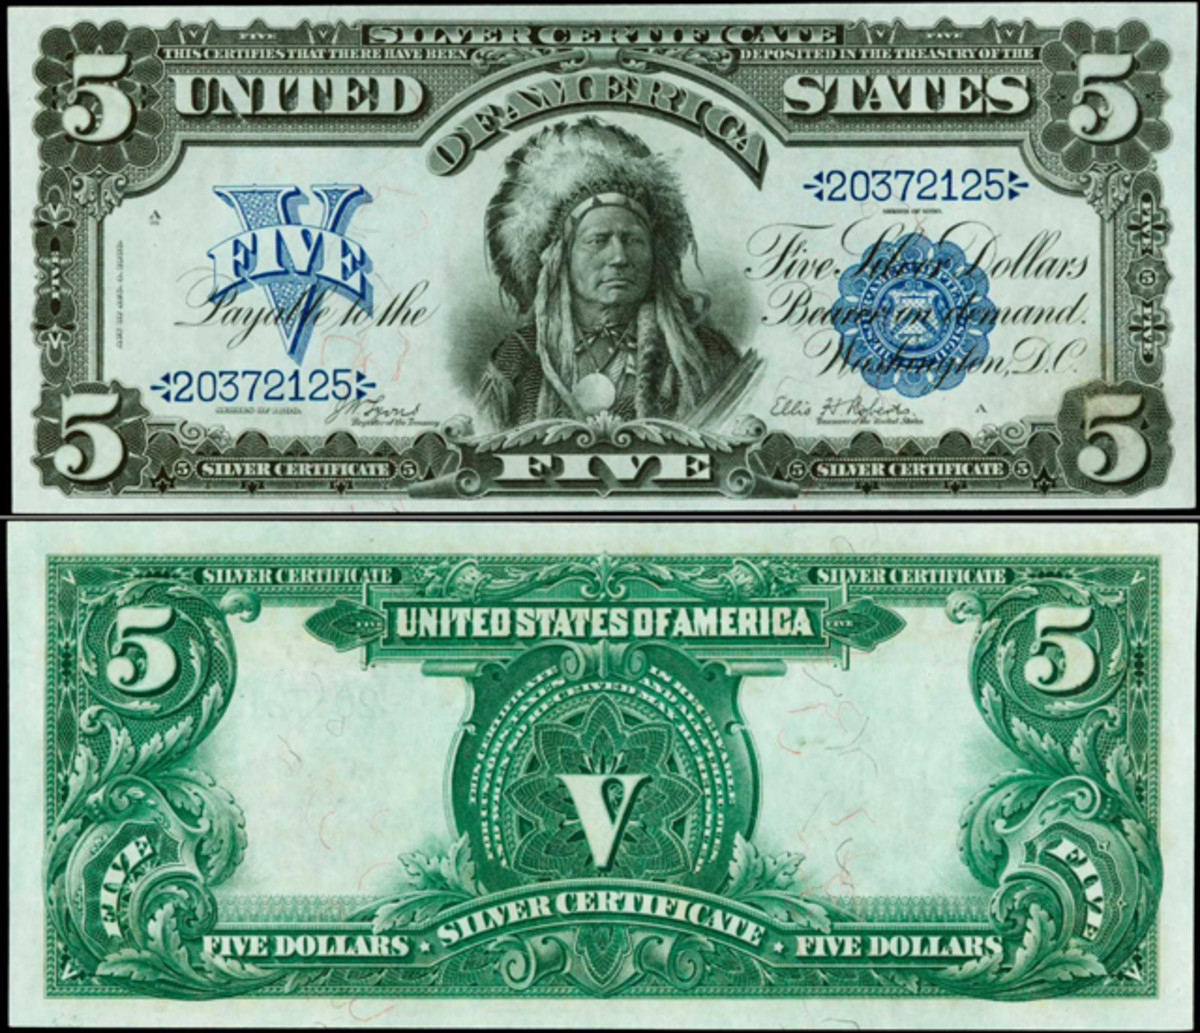 The finest PCGS-graded 1899 $5 Silver Certificate, Fr. 271, is being offered.